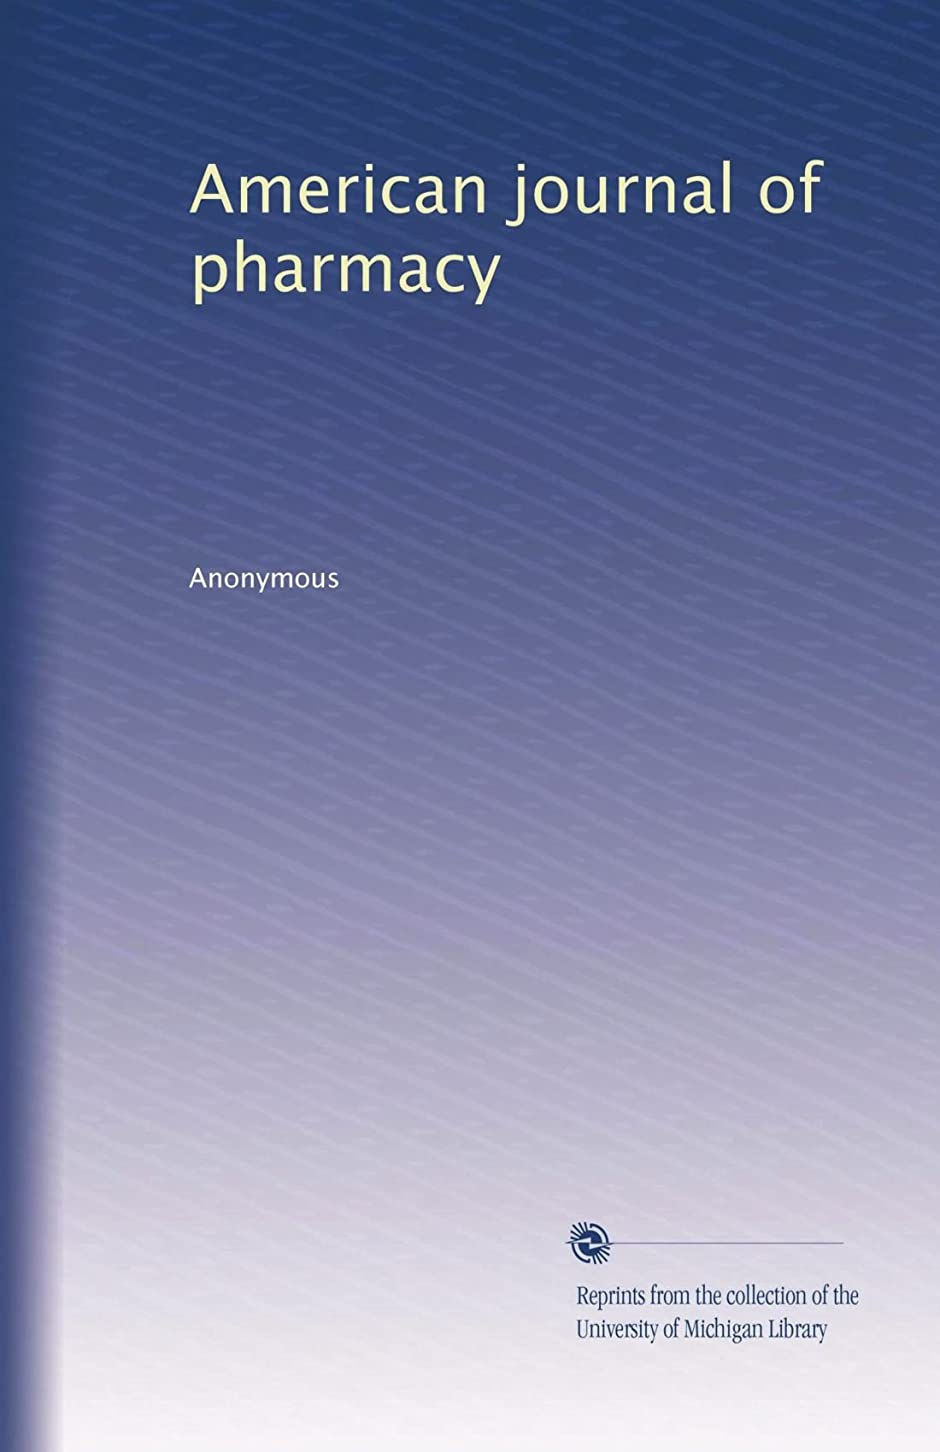 アンケート甘いかごAmerican journal of pharmacy (Volume 31)